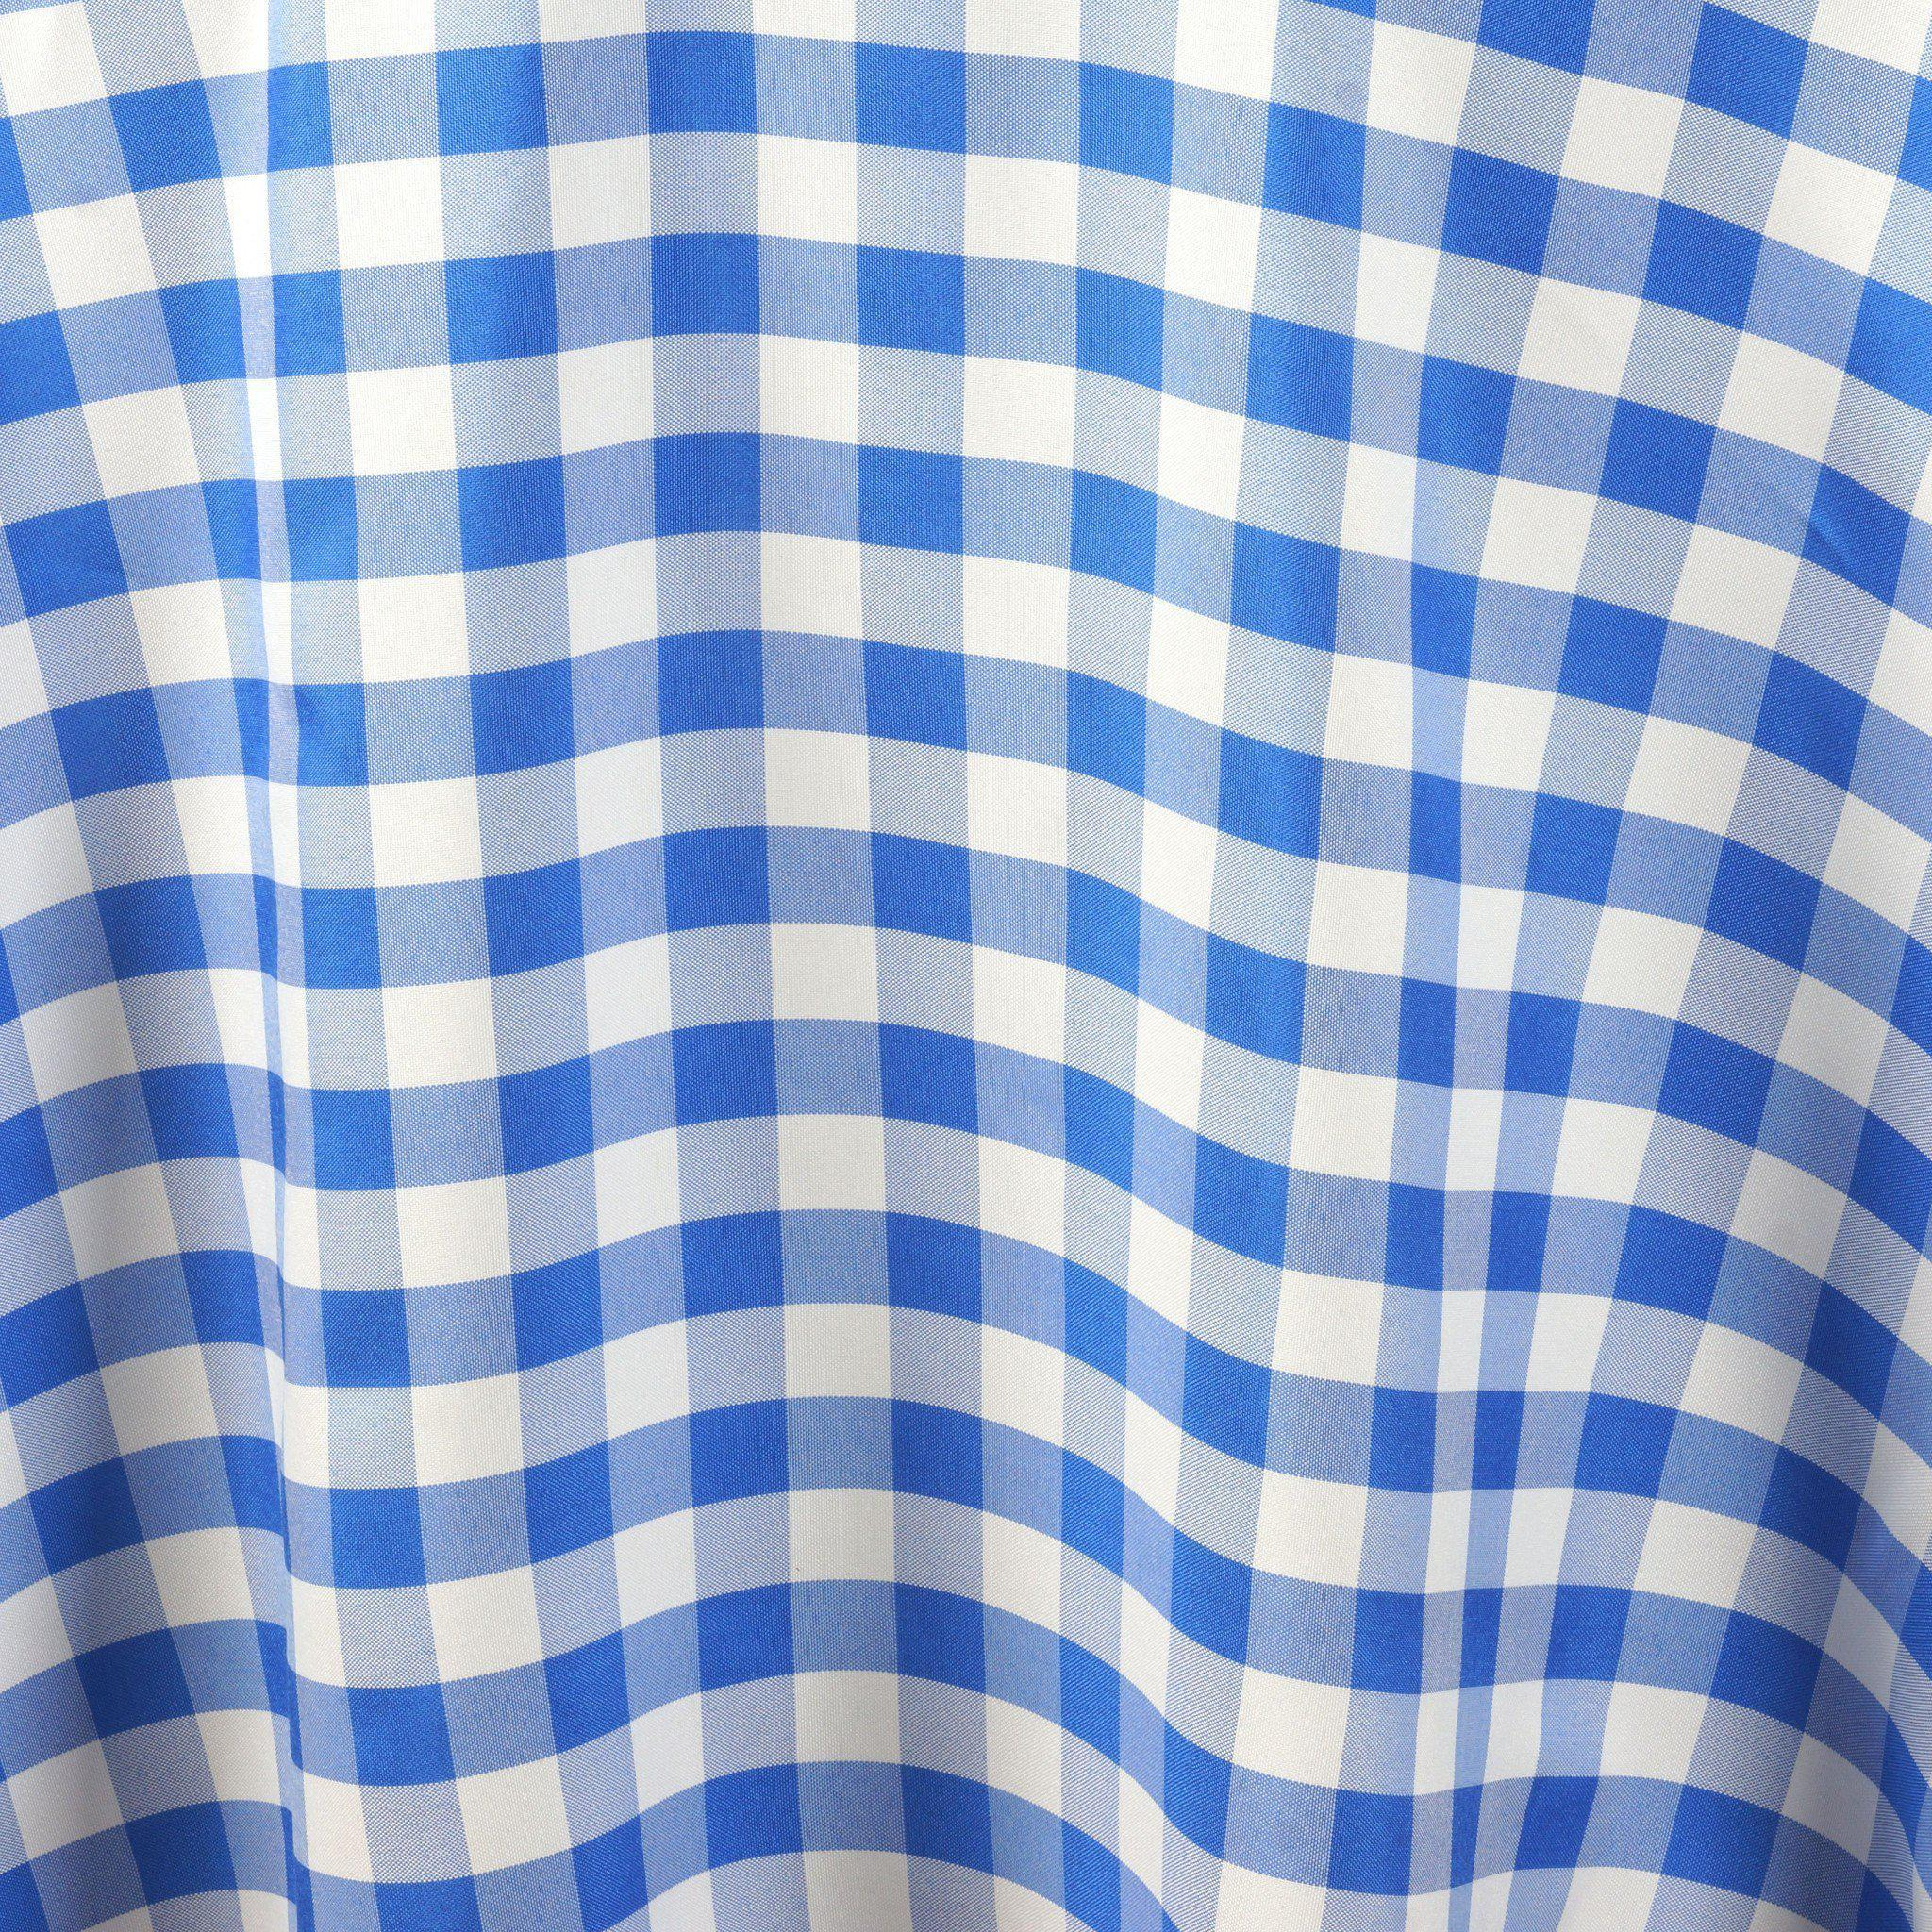 Captivating 70 034 Checkered Gingham Tablecloth Polyester Round Linens